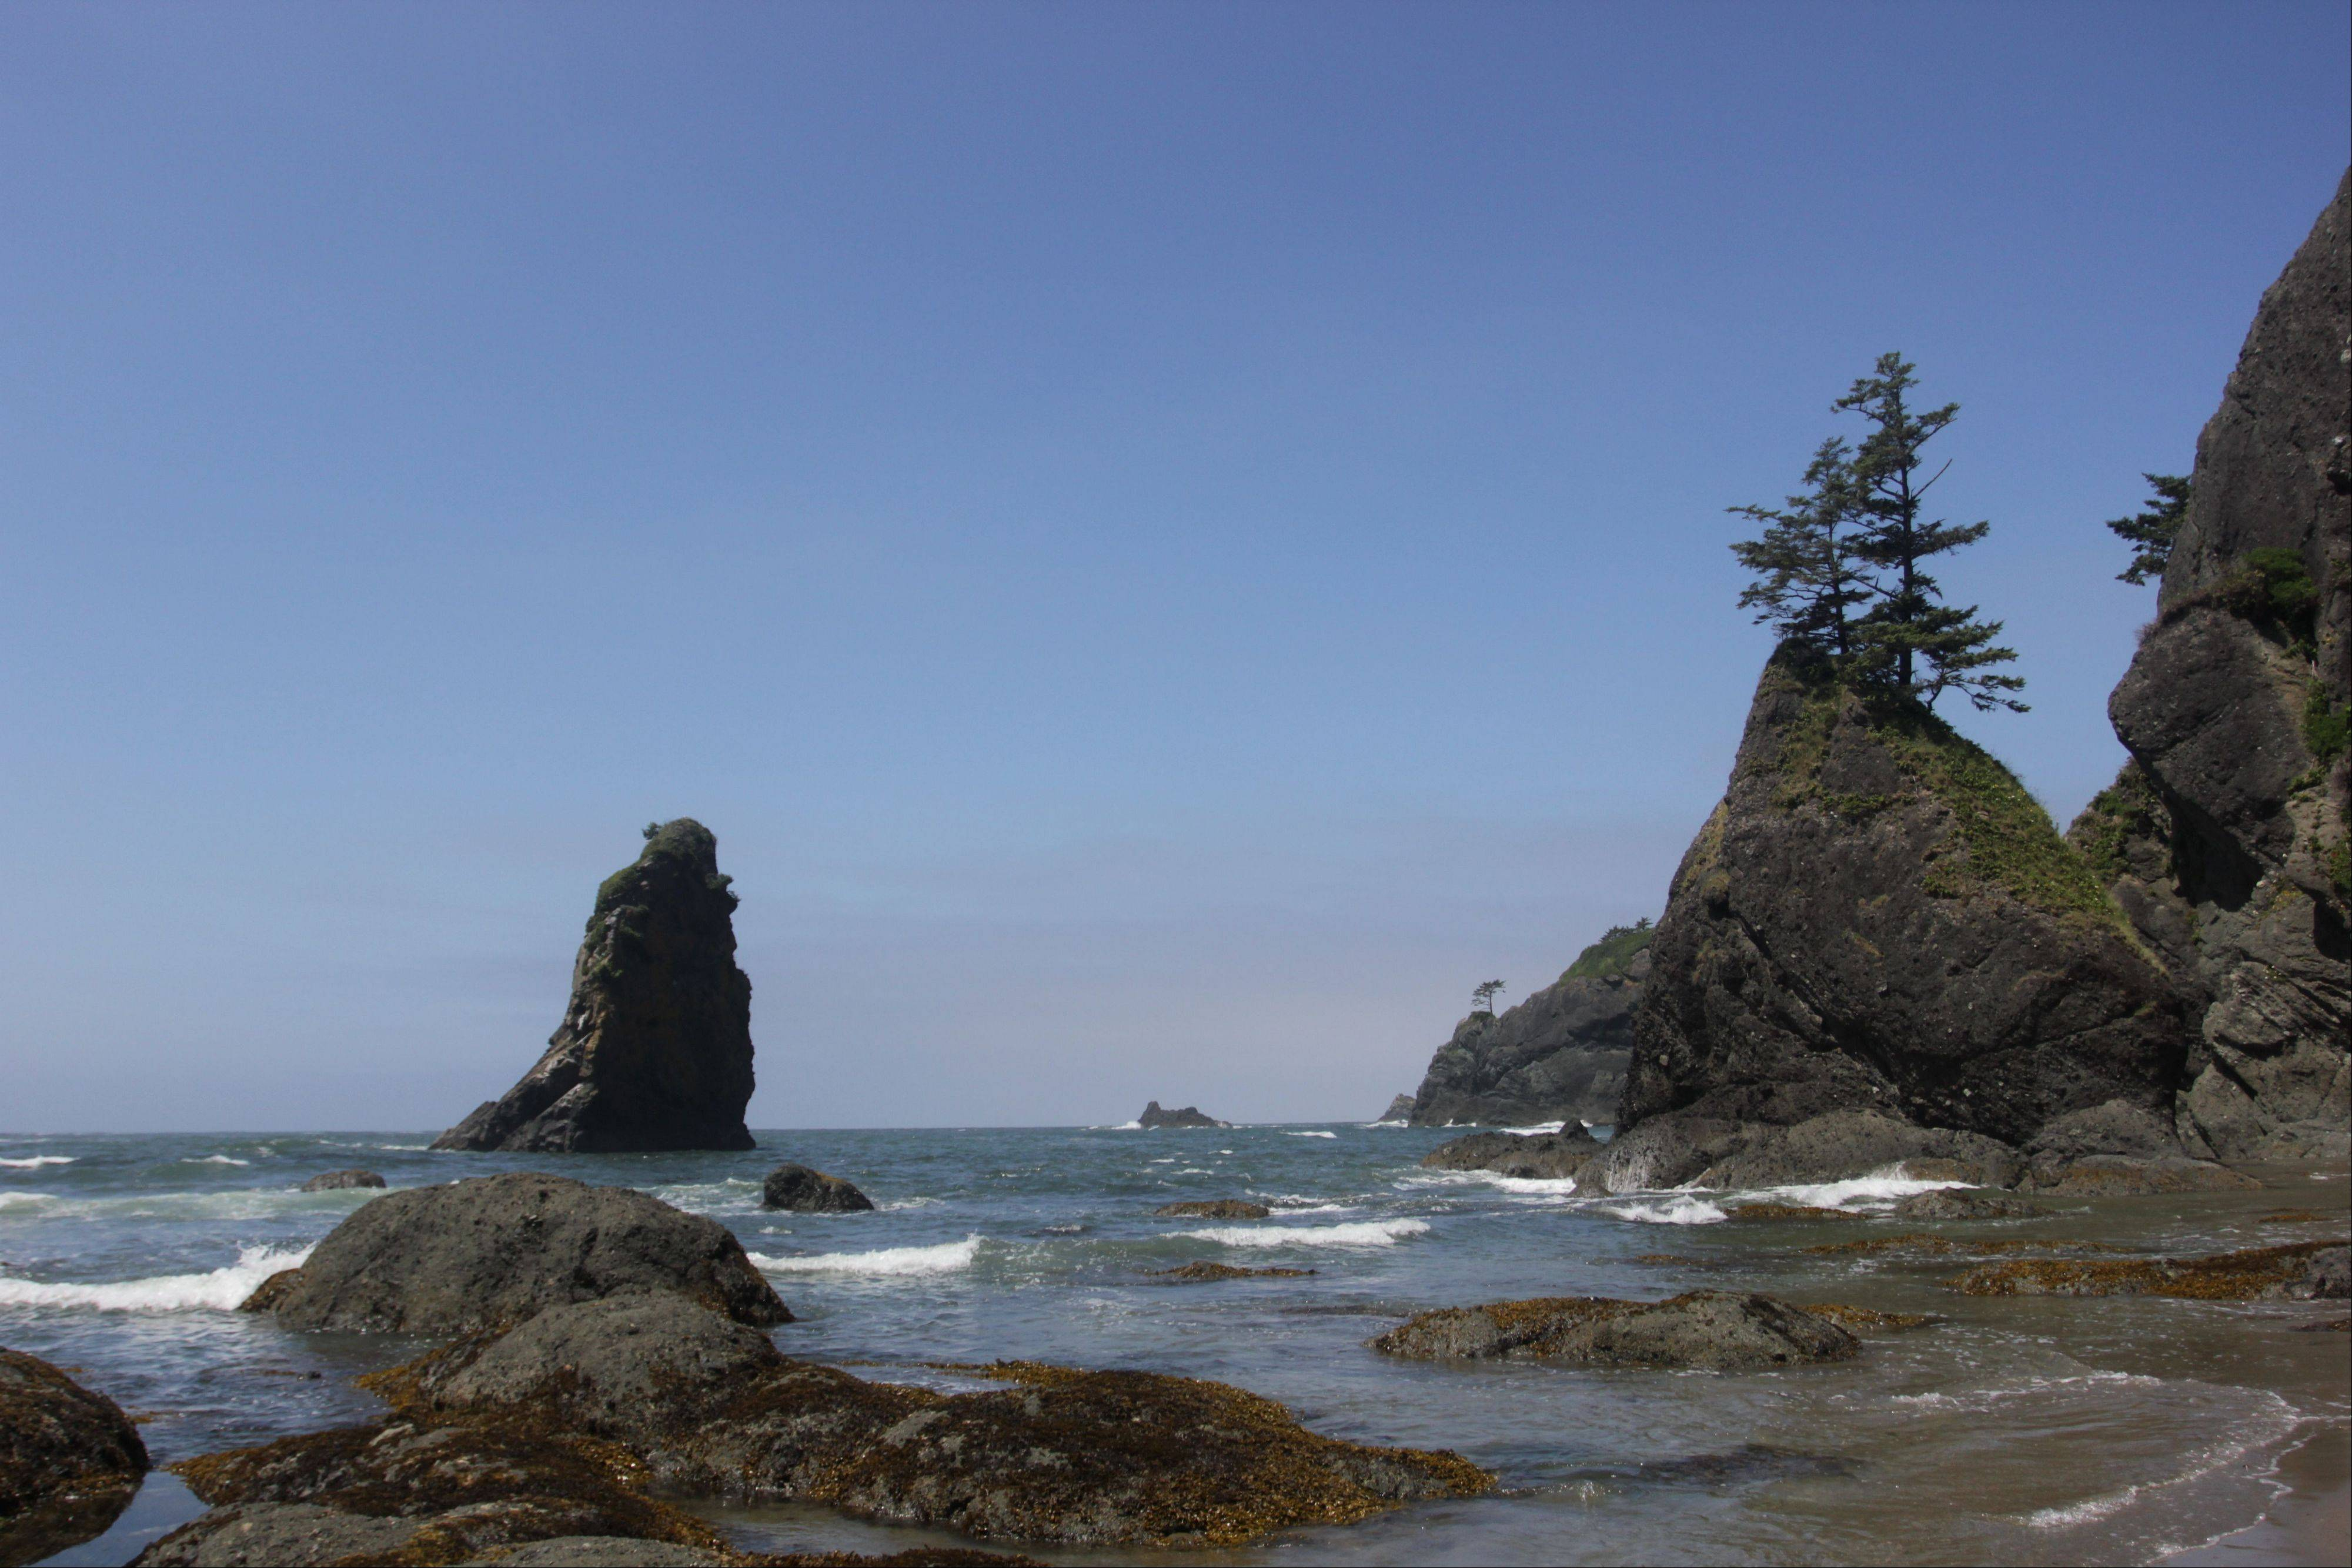 Rock formations known as sea stacks protrude out to the Pacific Ocean at the north end of Shi Shi Beach in Washington state's Olympic National Park.